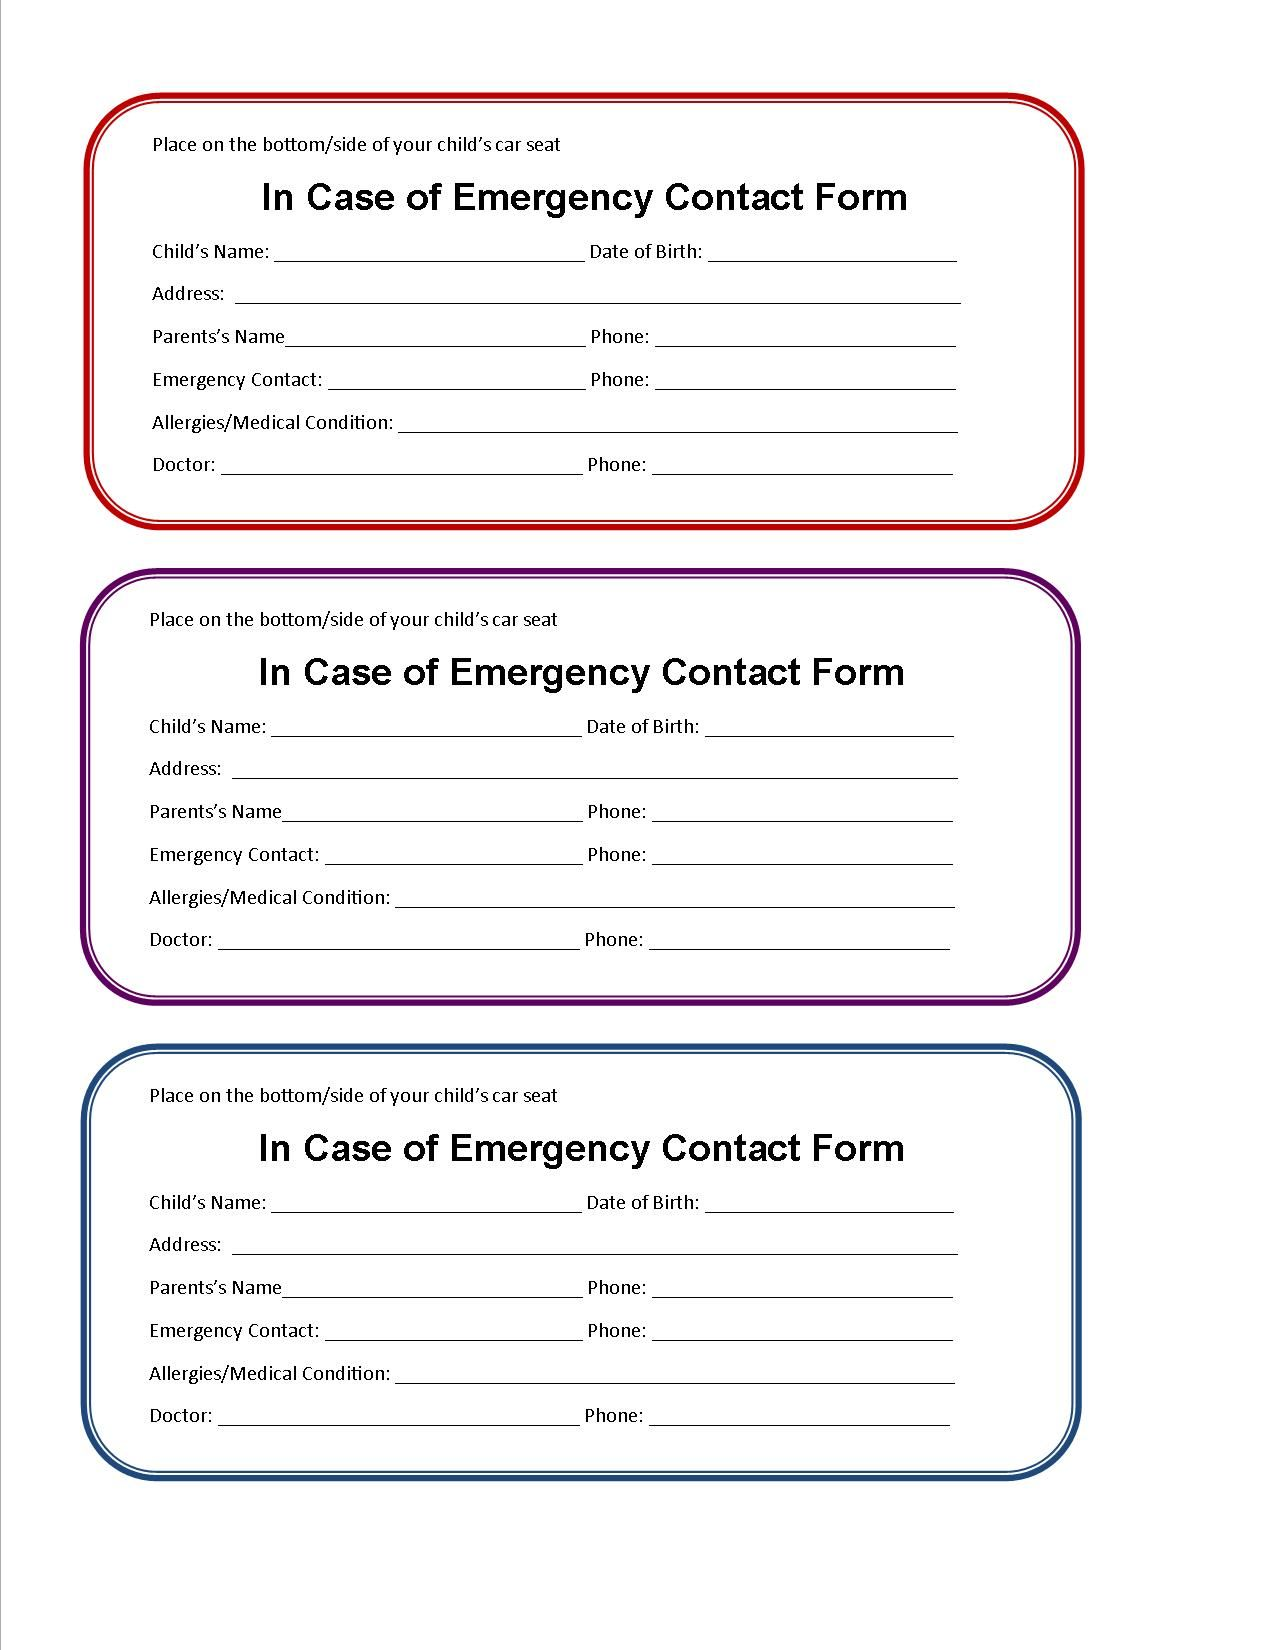 Printable Emergency Contact Form for Car Seat – Emergency Contact Forms